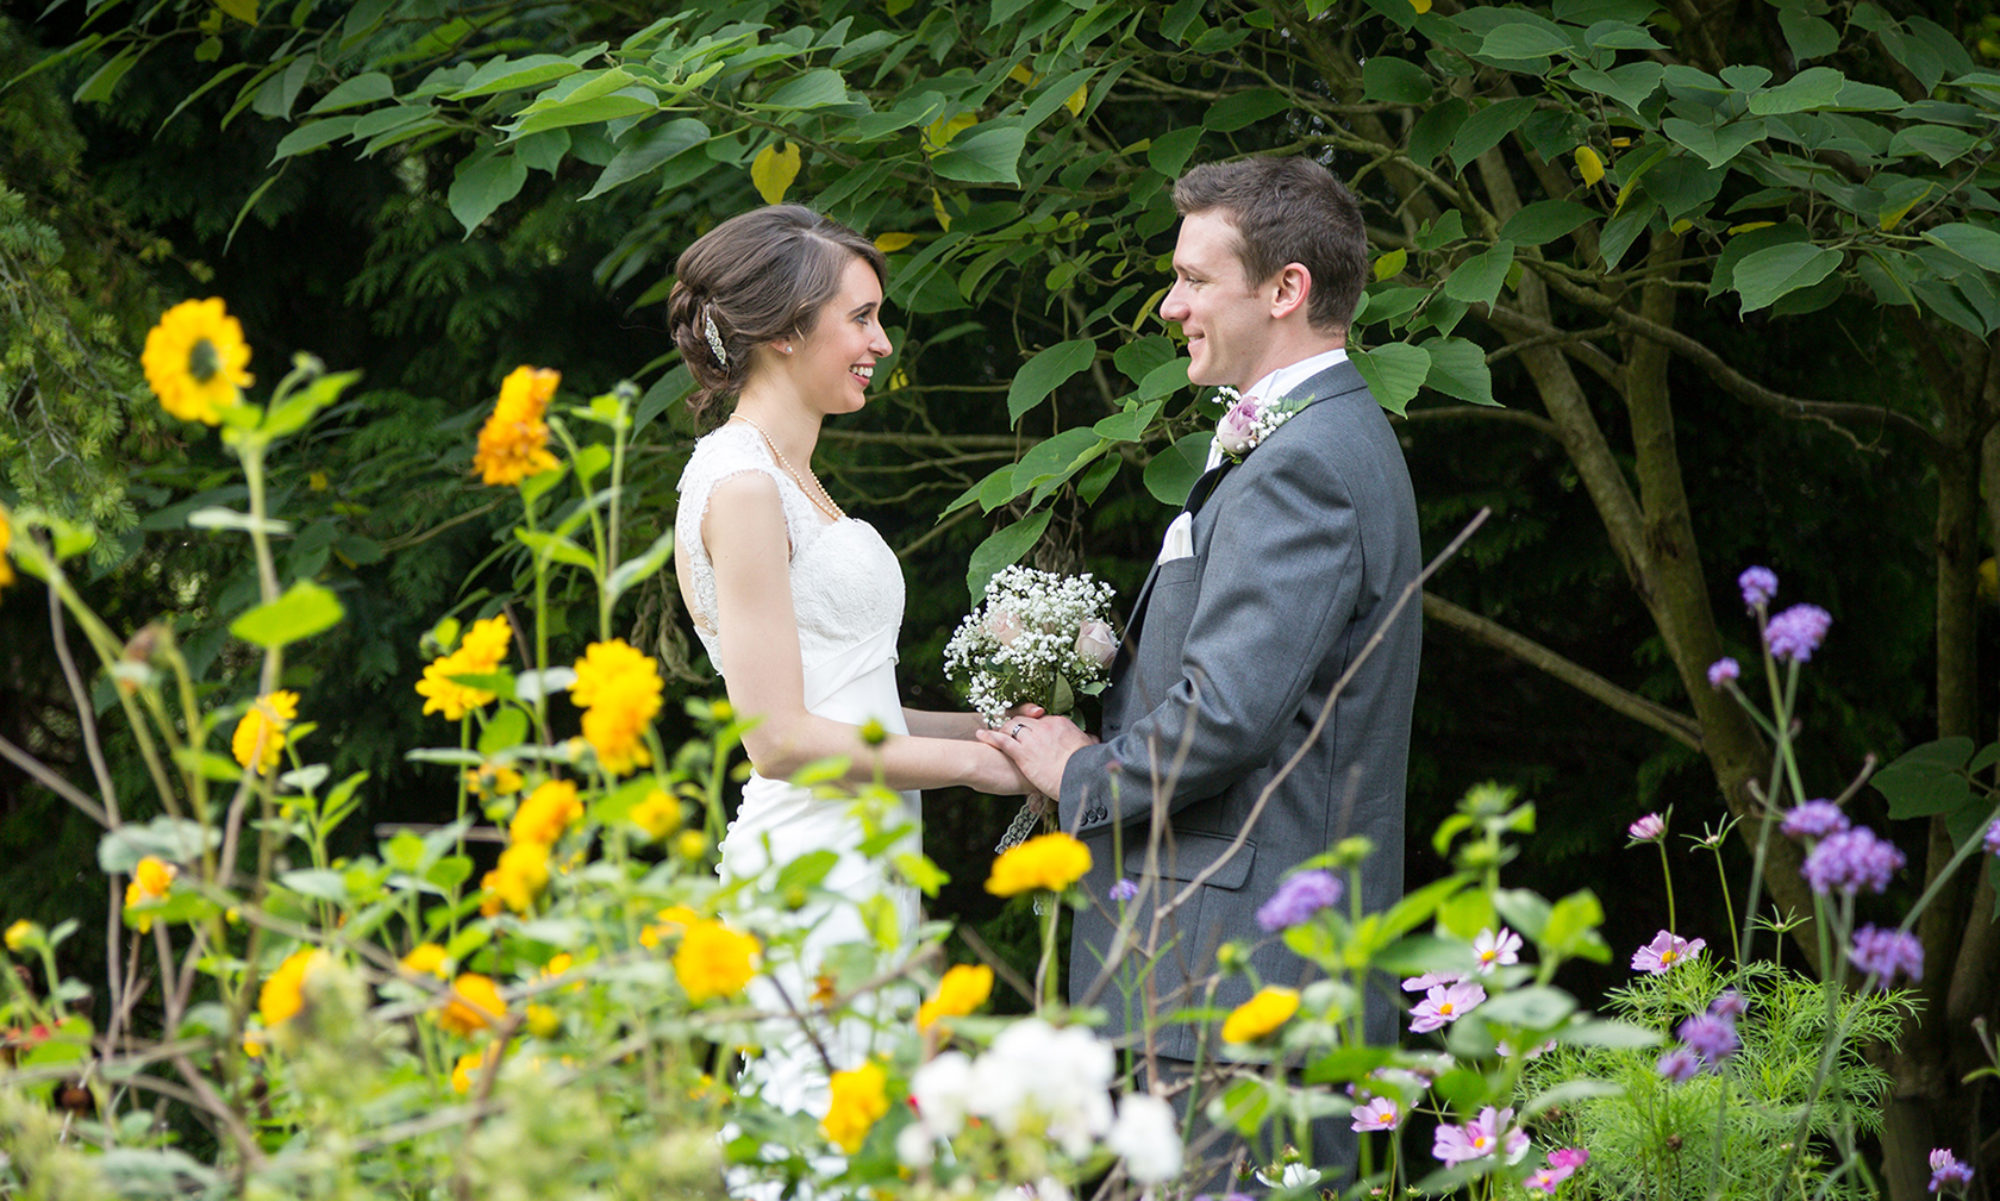 Wedding photography prices / Collections wedding photography Bridgend